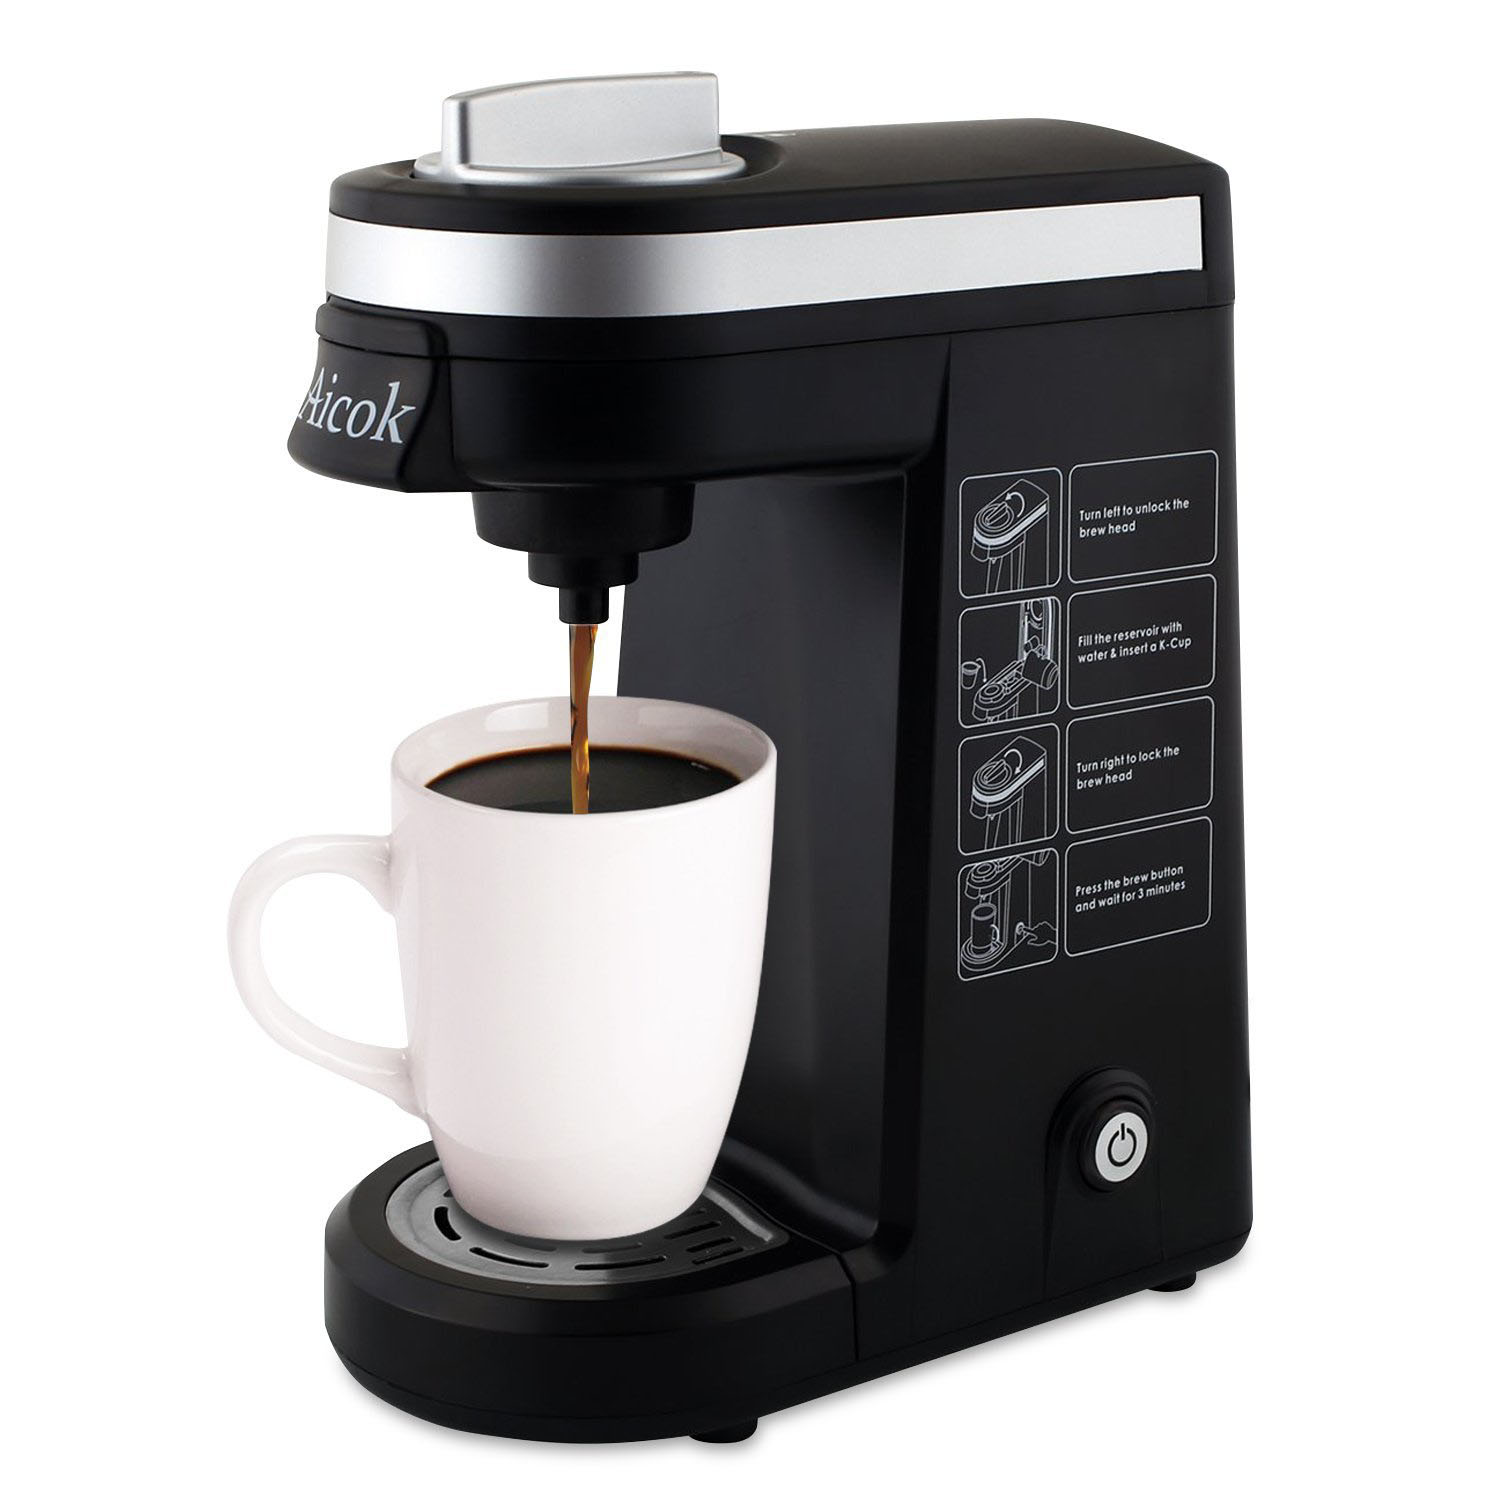 Deal of the Day: 54% Off Aicok Single Serve K-Cup Coffee Maker